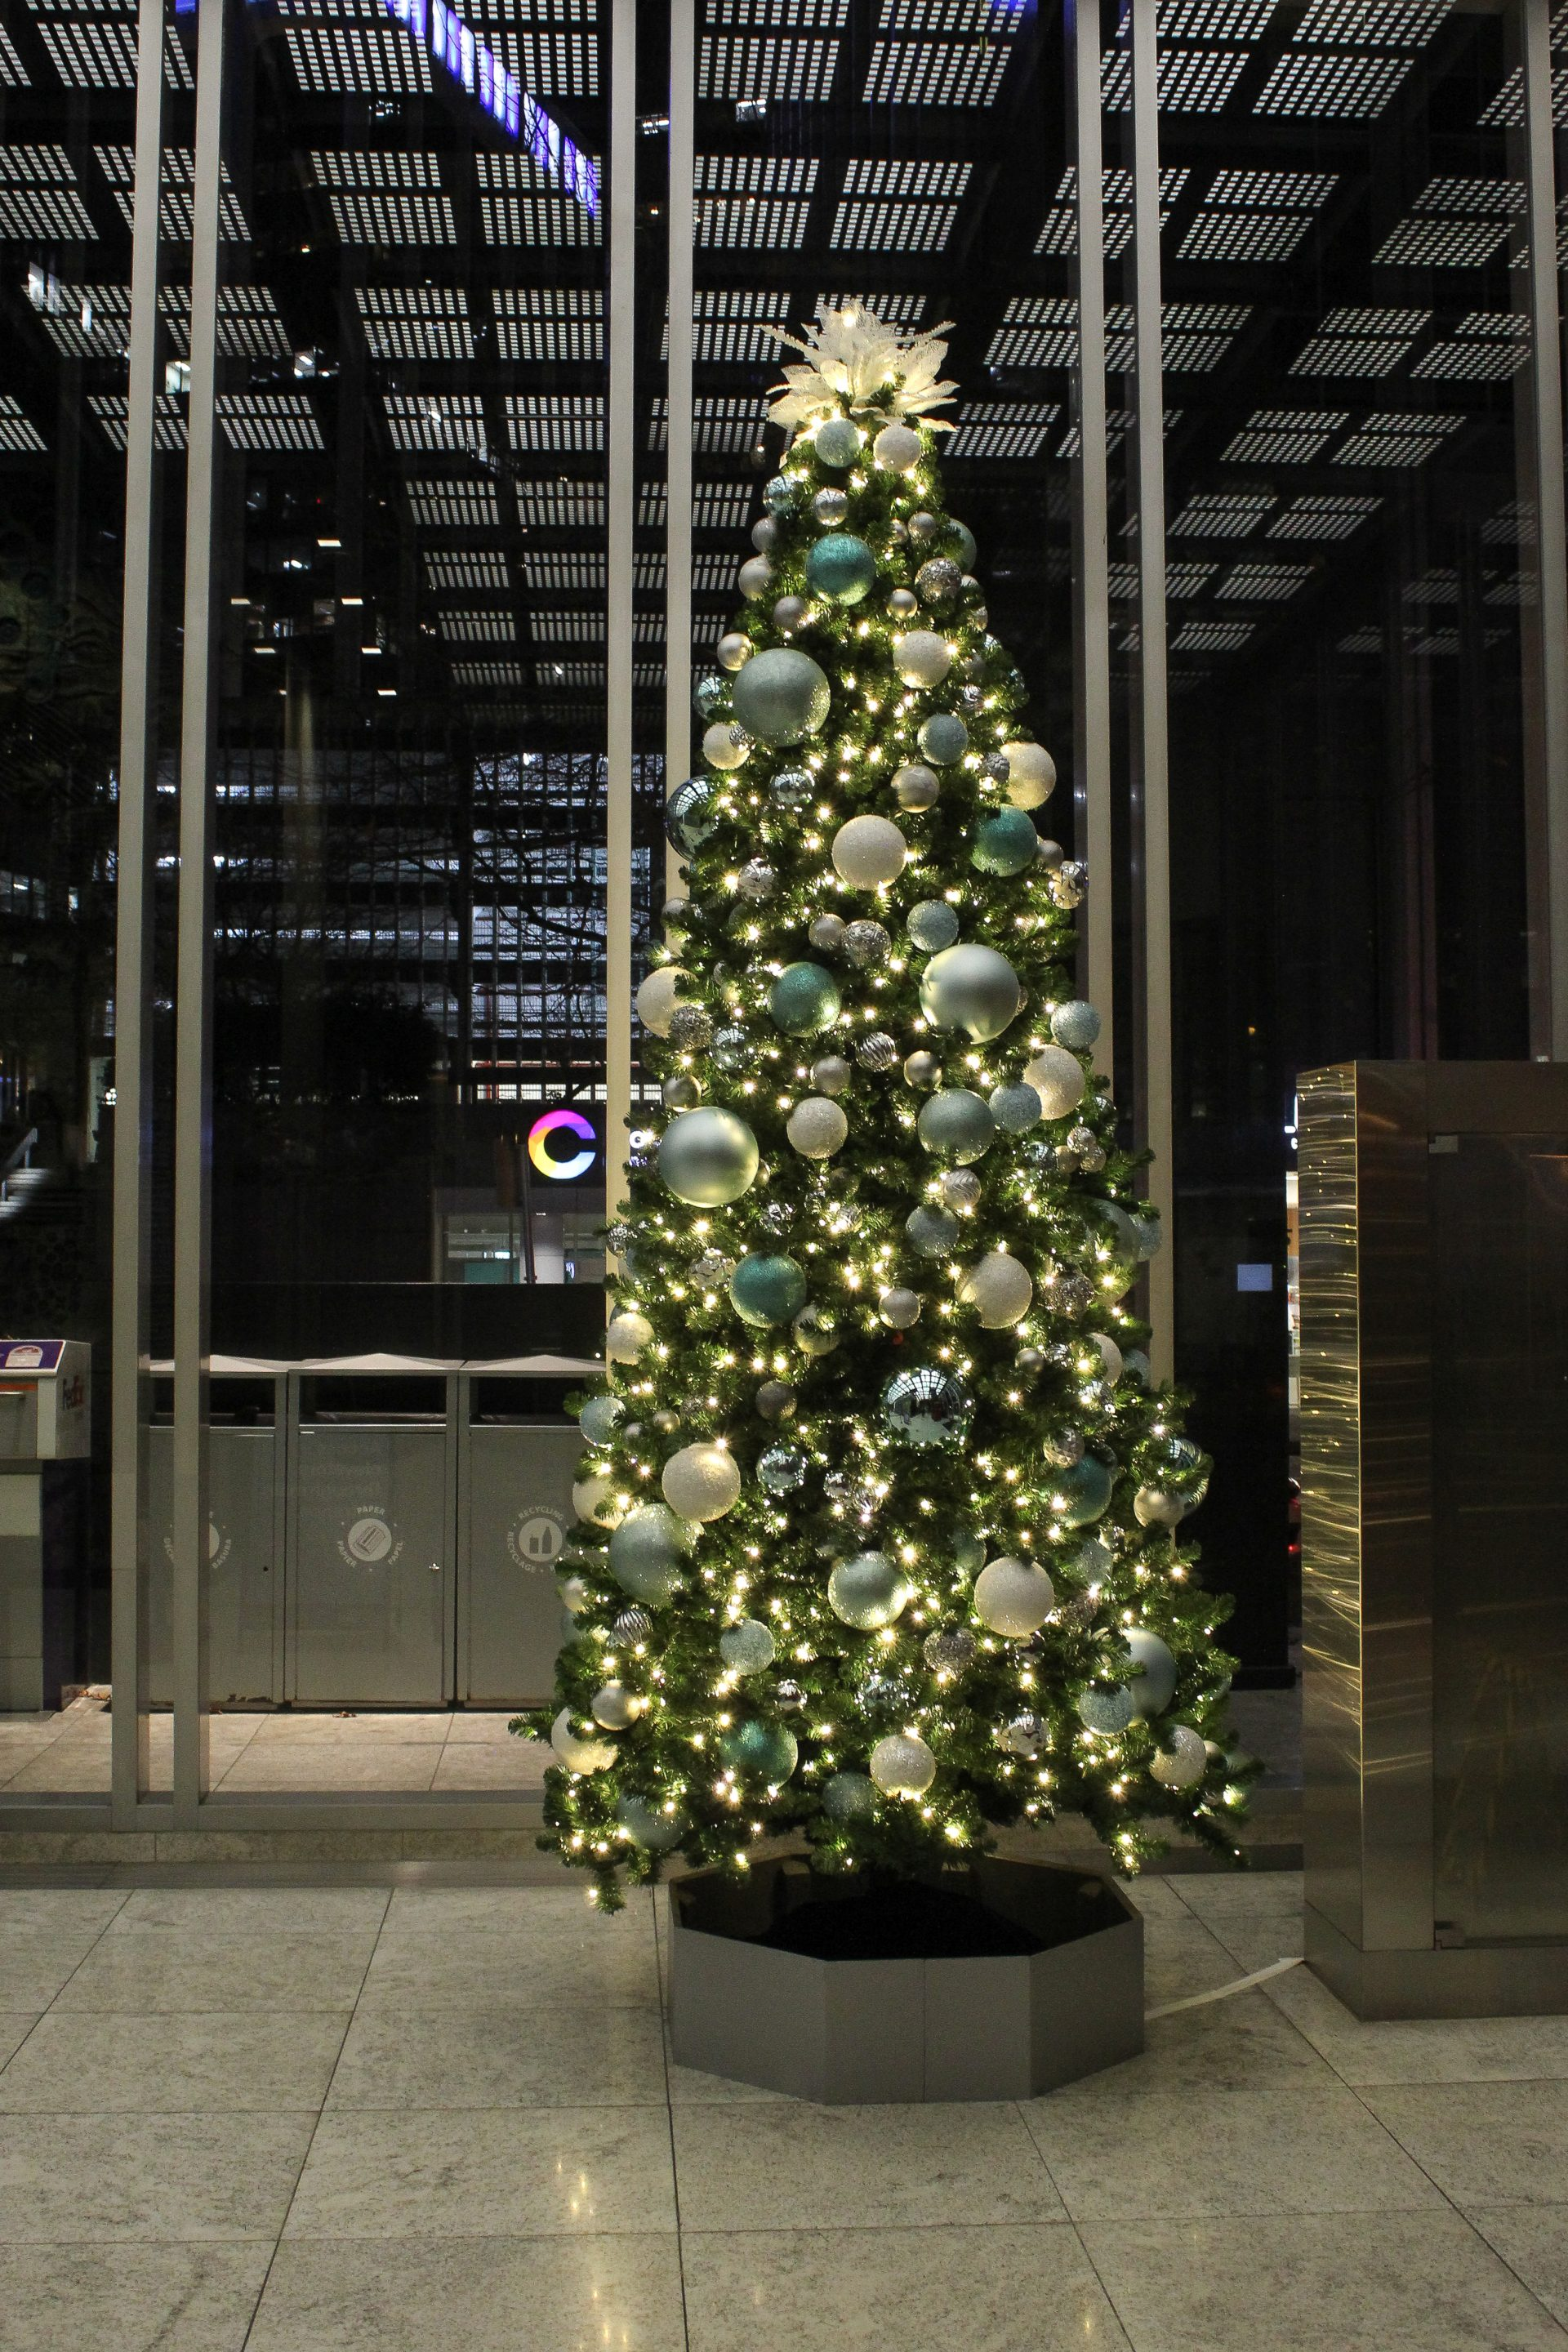 12' tall Christmas tree decorated with silver, white and teal decor inside Guinness building office loby